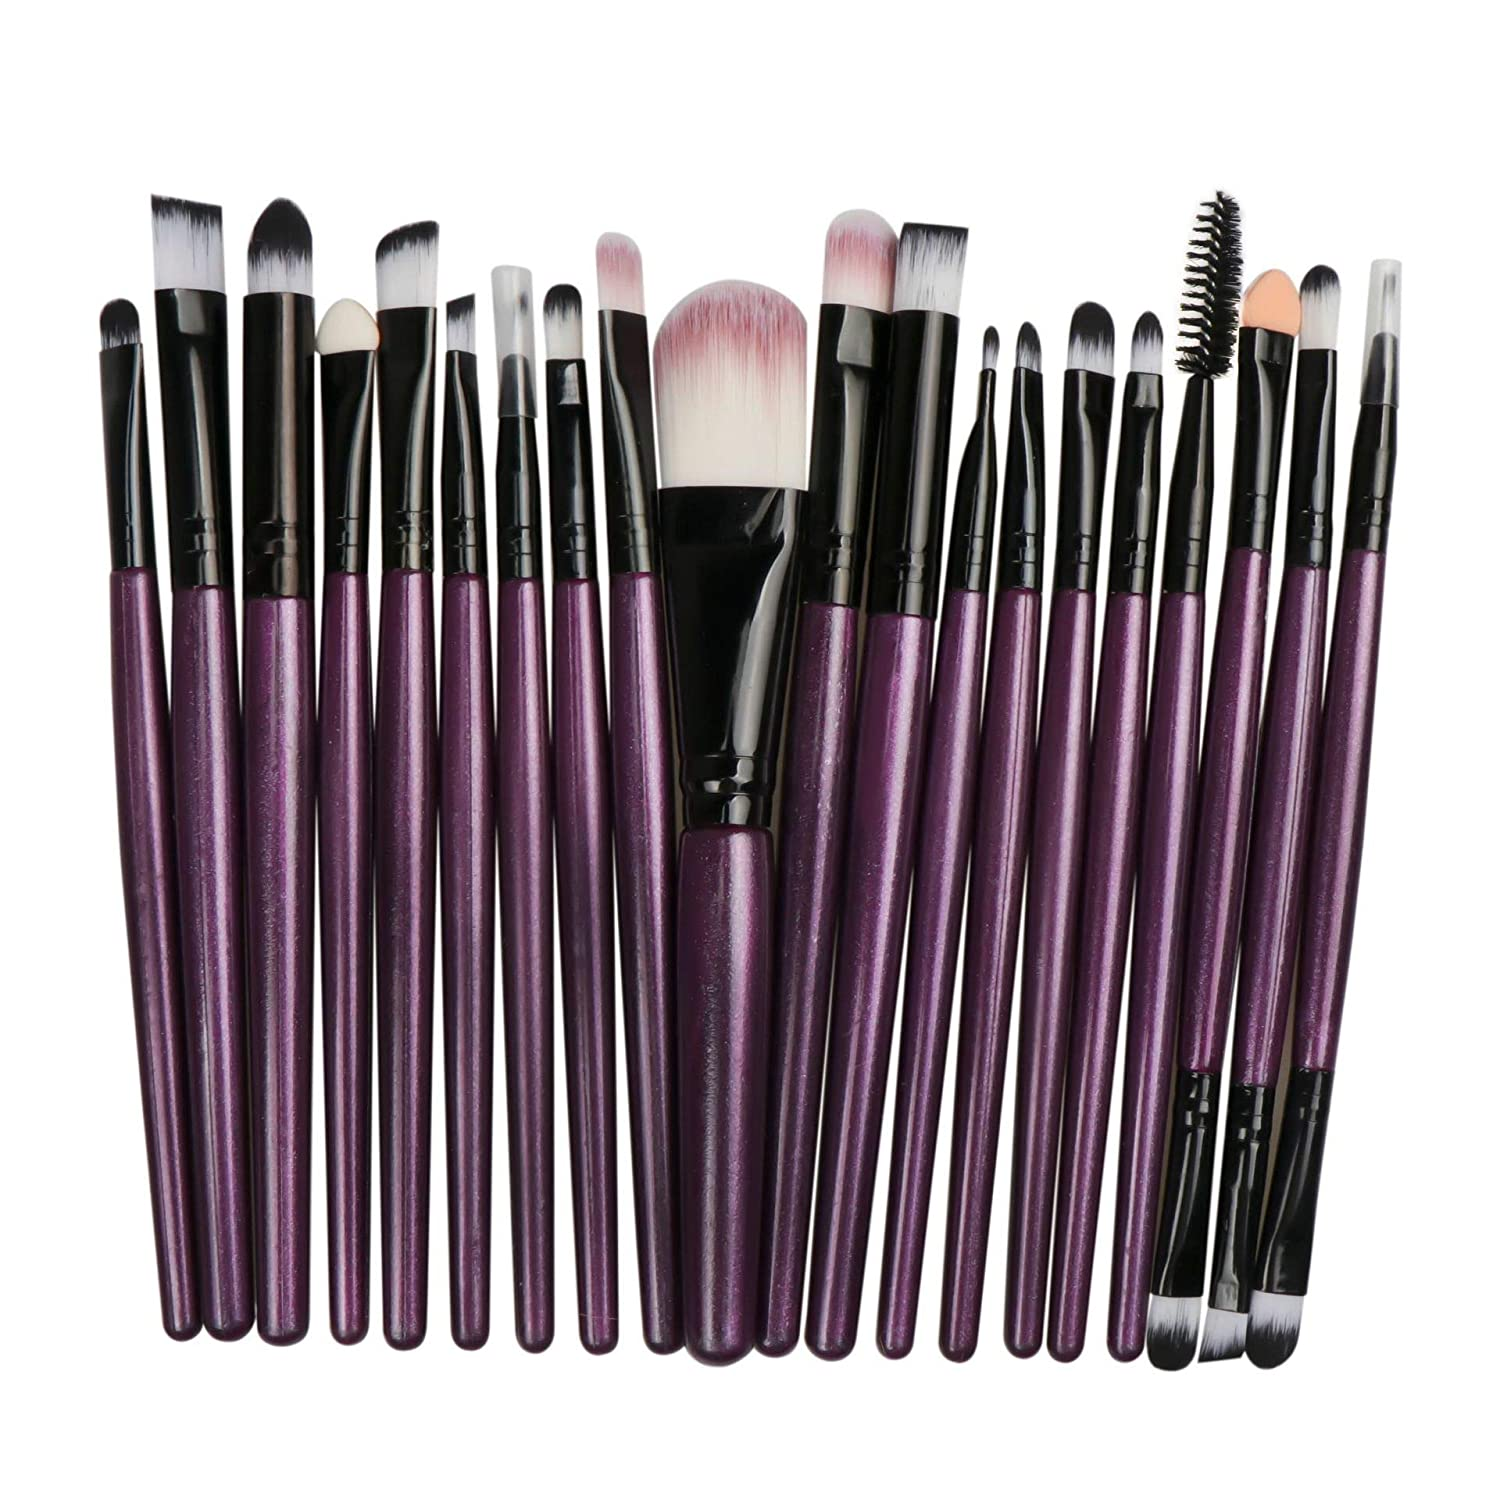 20 Pieces Premium quality Makeup Brushes Set include Foundation brush,eye brush,face brush,lip brush which can meet yourface and eye makeup application.